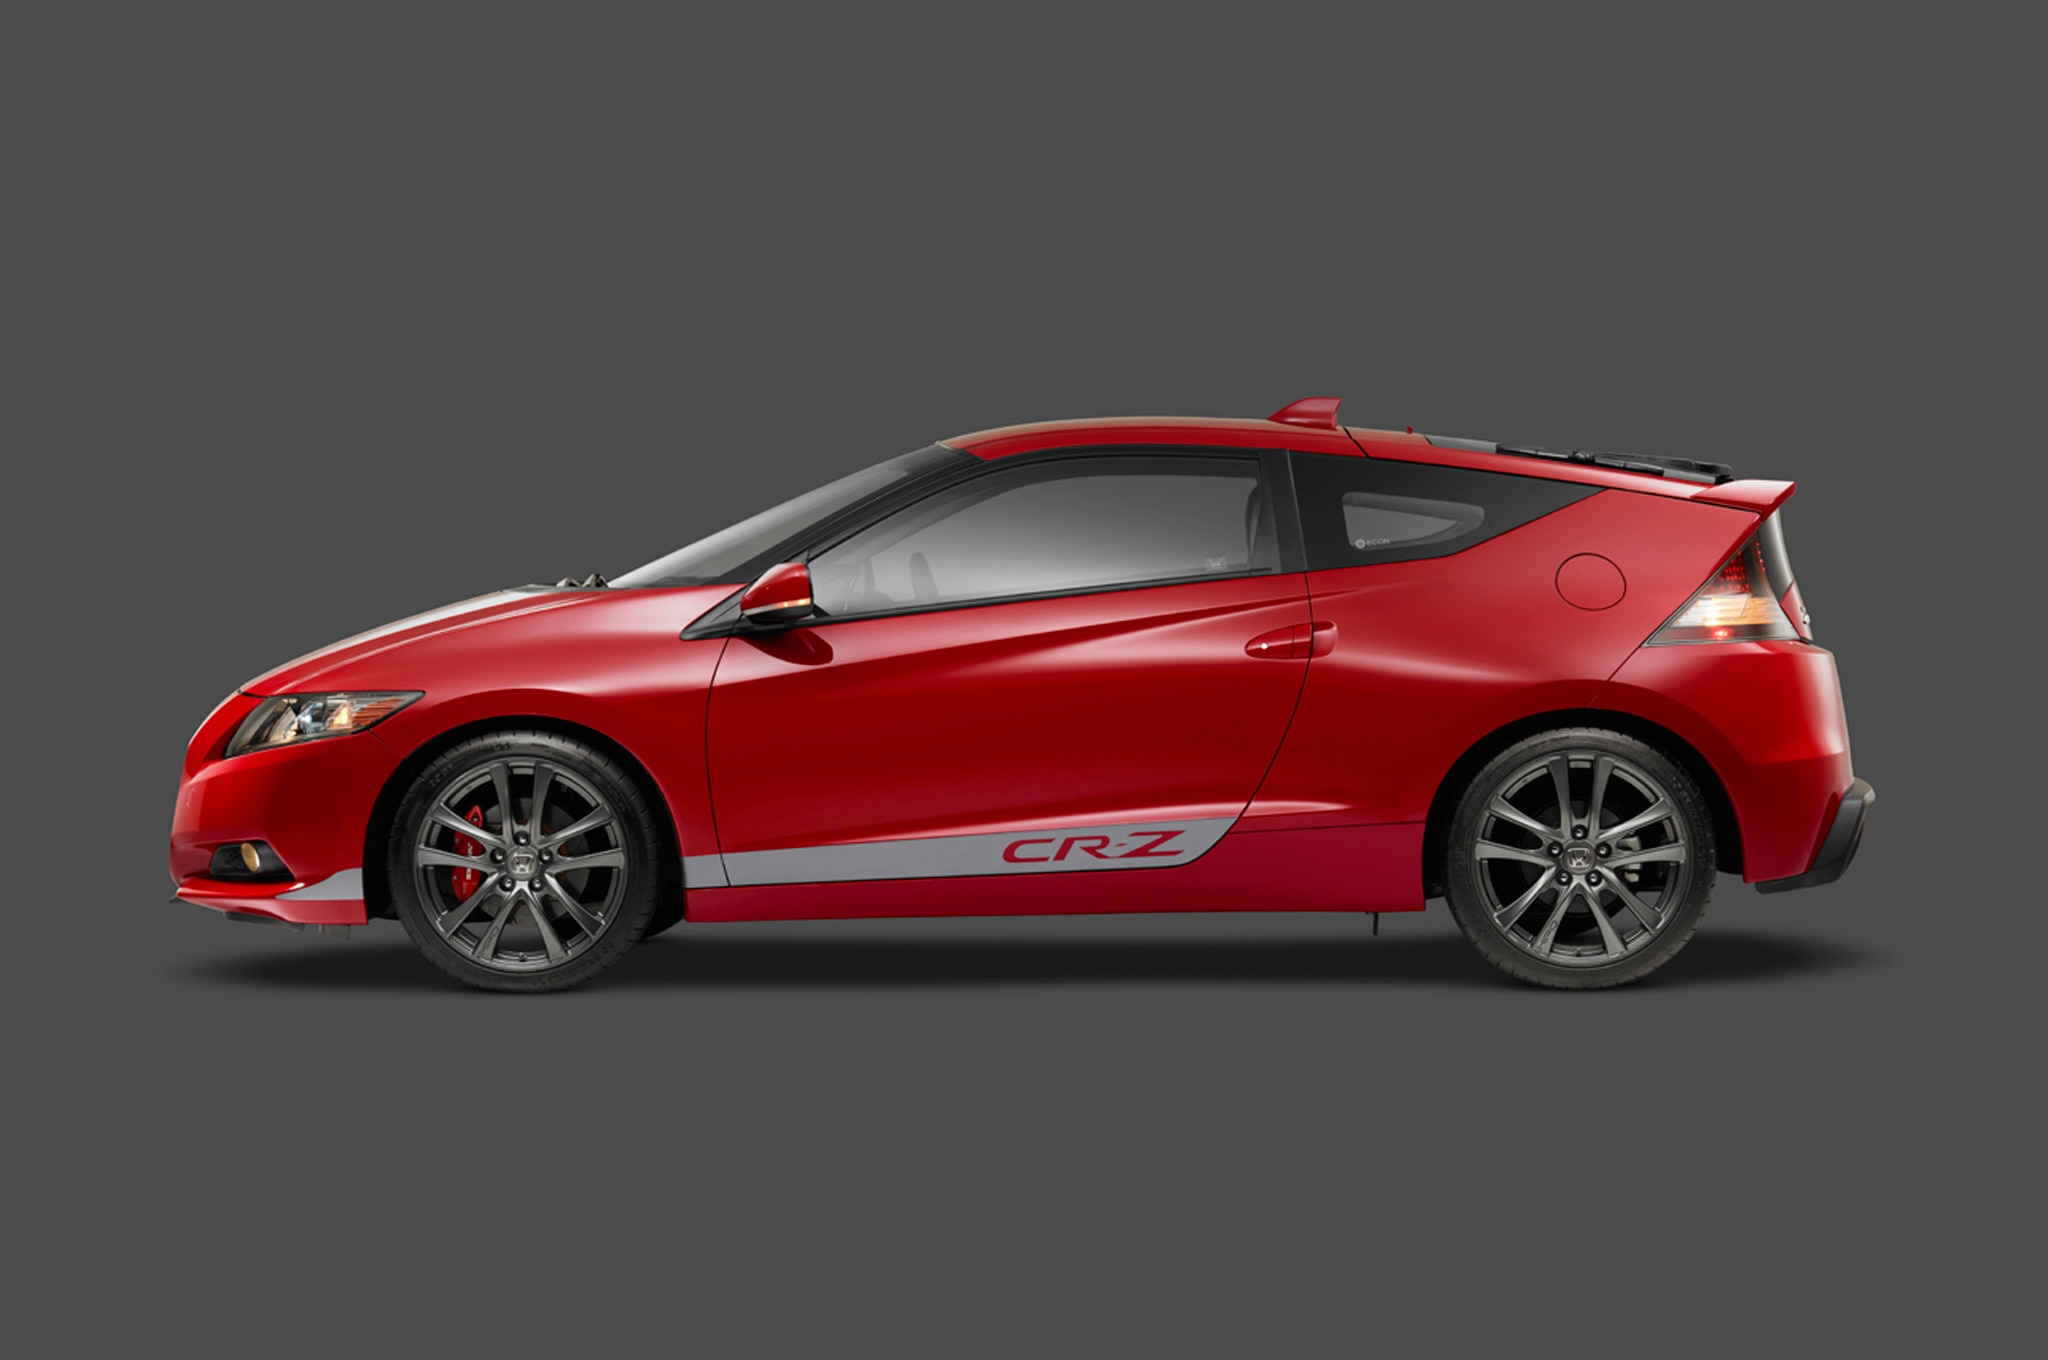 Honda crz photo - 3